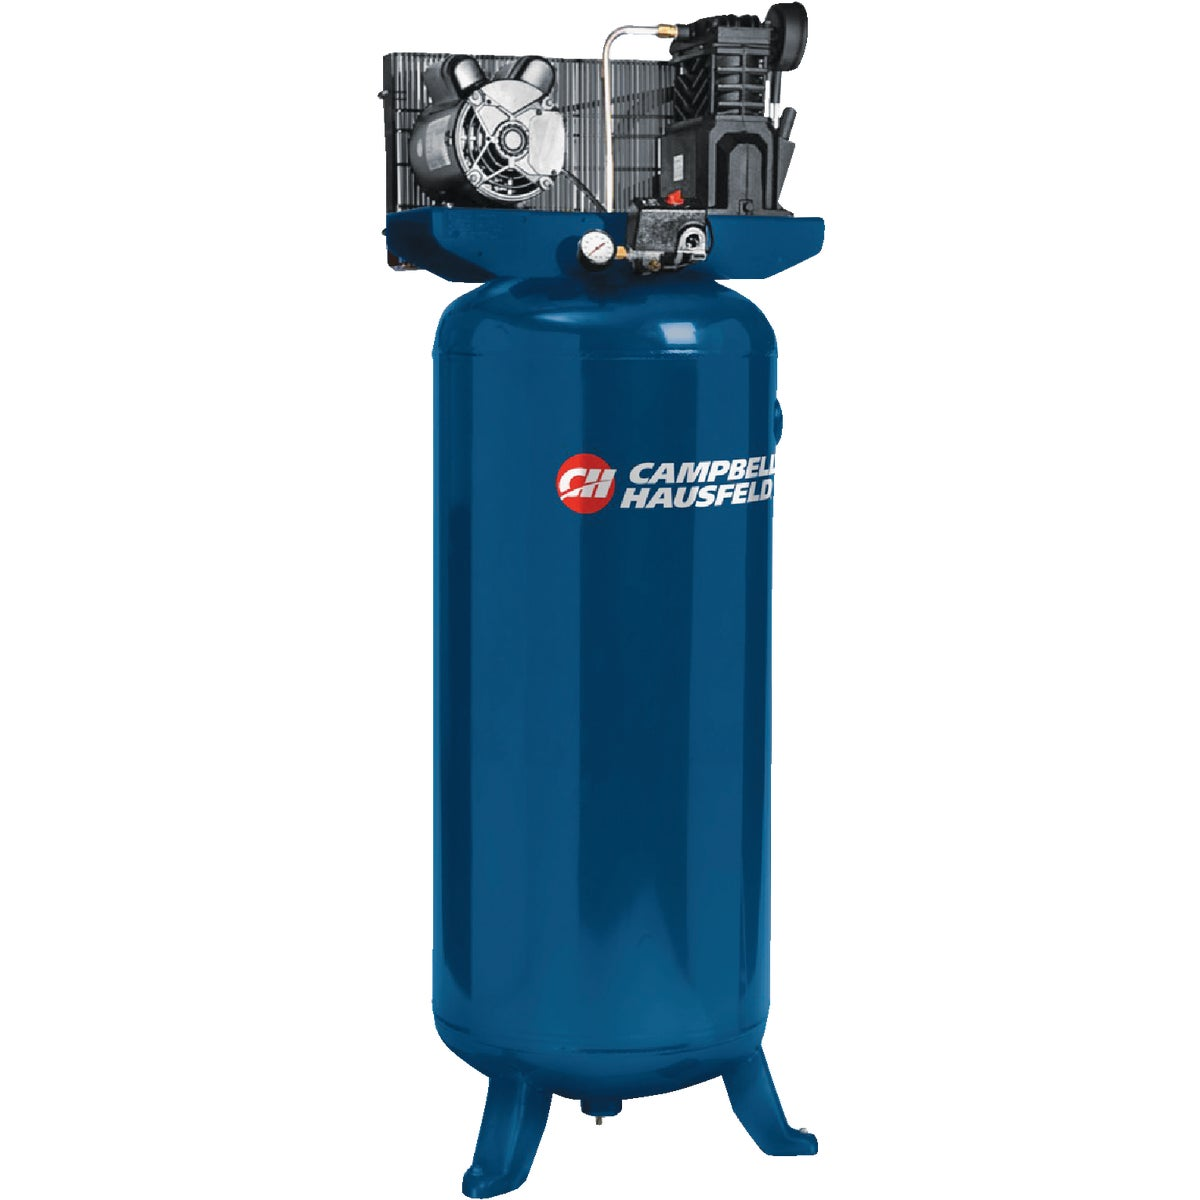 60GL VERT AIR COMPRESSOR - VT6275 by Campbell Hausfeld Co